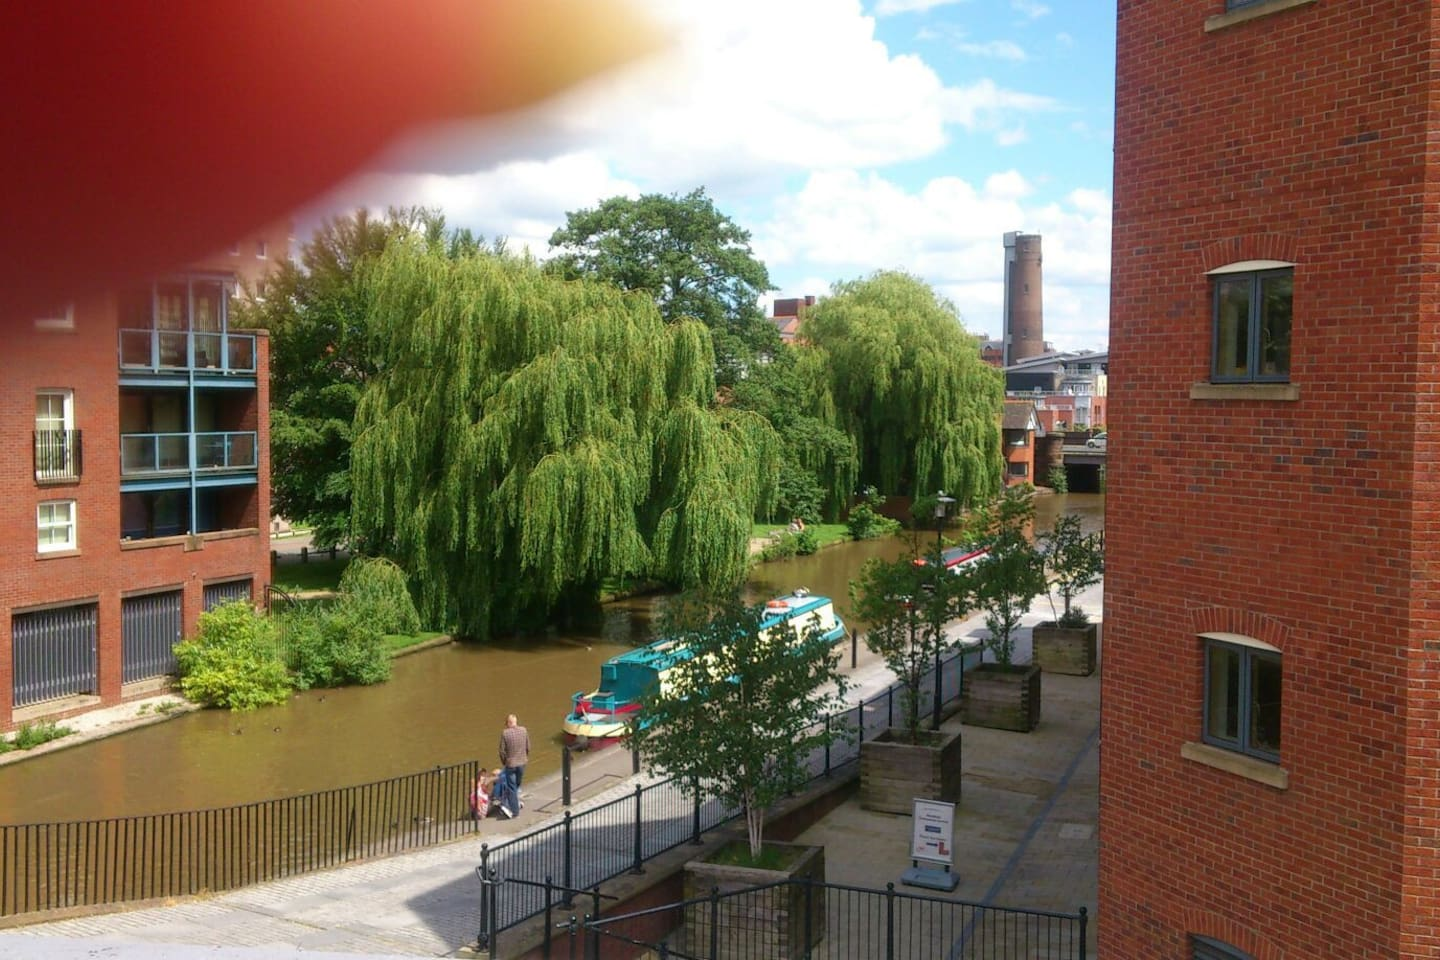 View over the Shropshire Union Canal that runs through the heart of the City of Chester